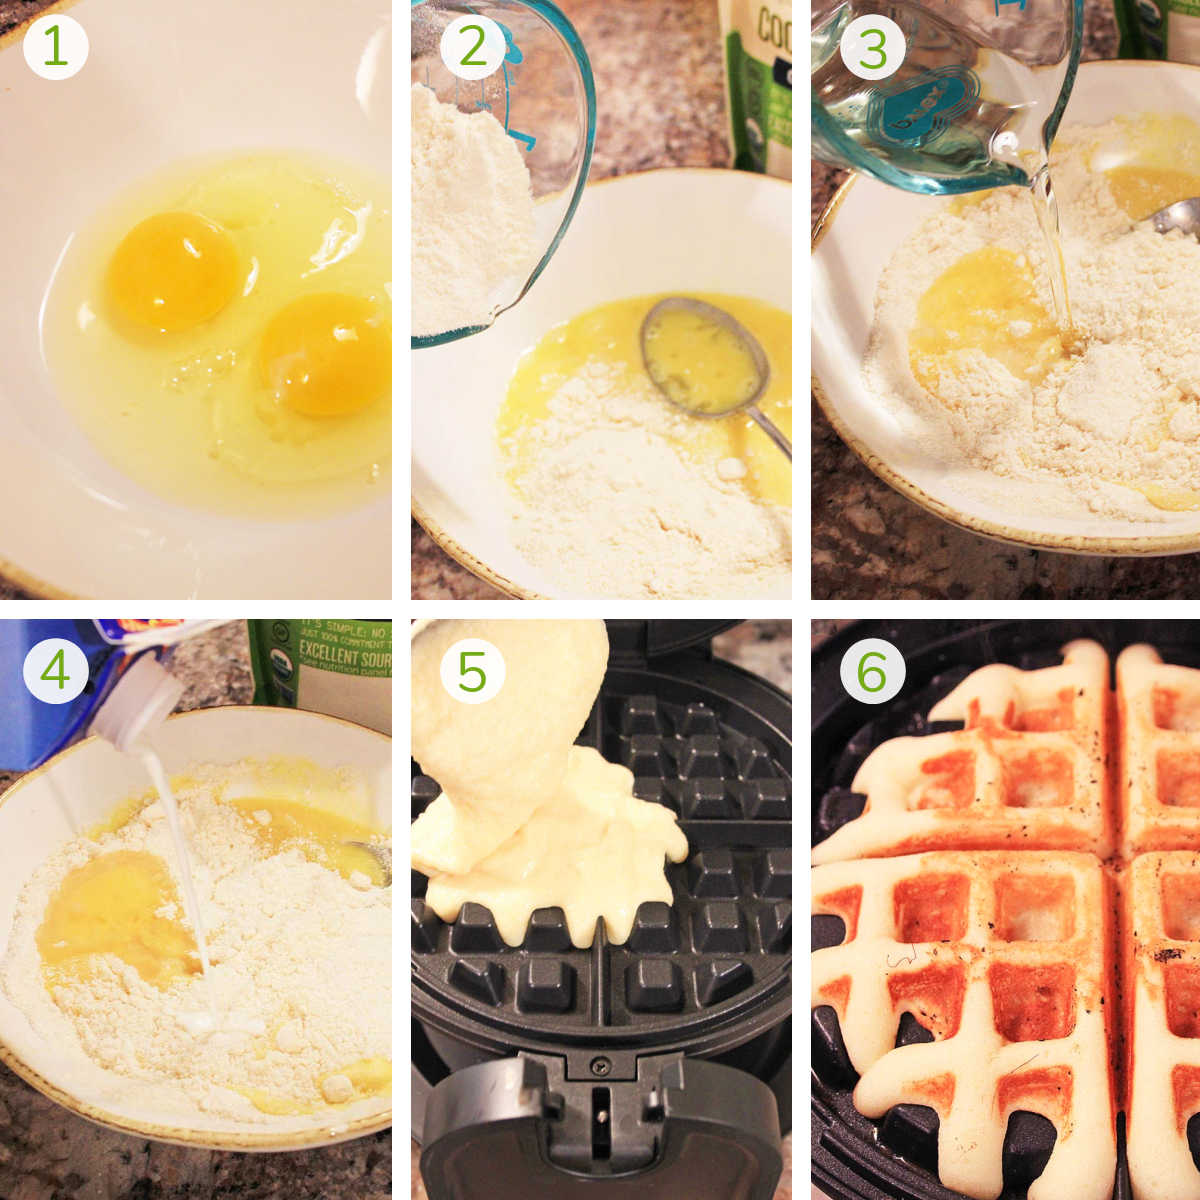 six photos that show how to make the coconut flour waffles in a bowl with eggs and then the waffle iron.